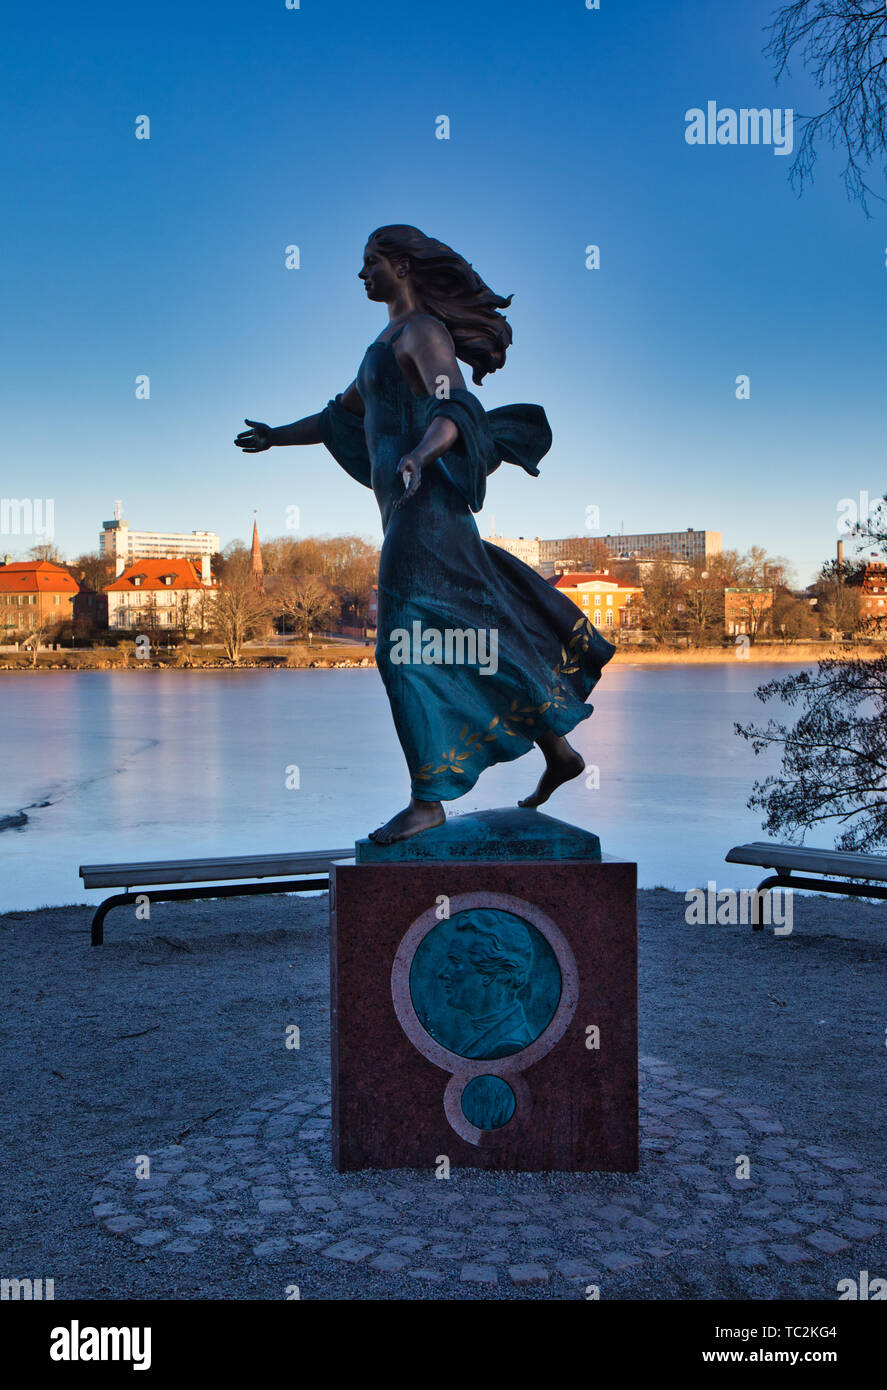 Statue of the Lady working for peace in the World by Peter Linde (2016), Djurgarden Stockholm Sweden - Stock Image